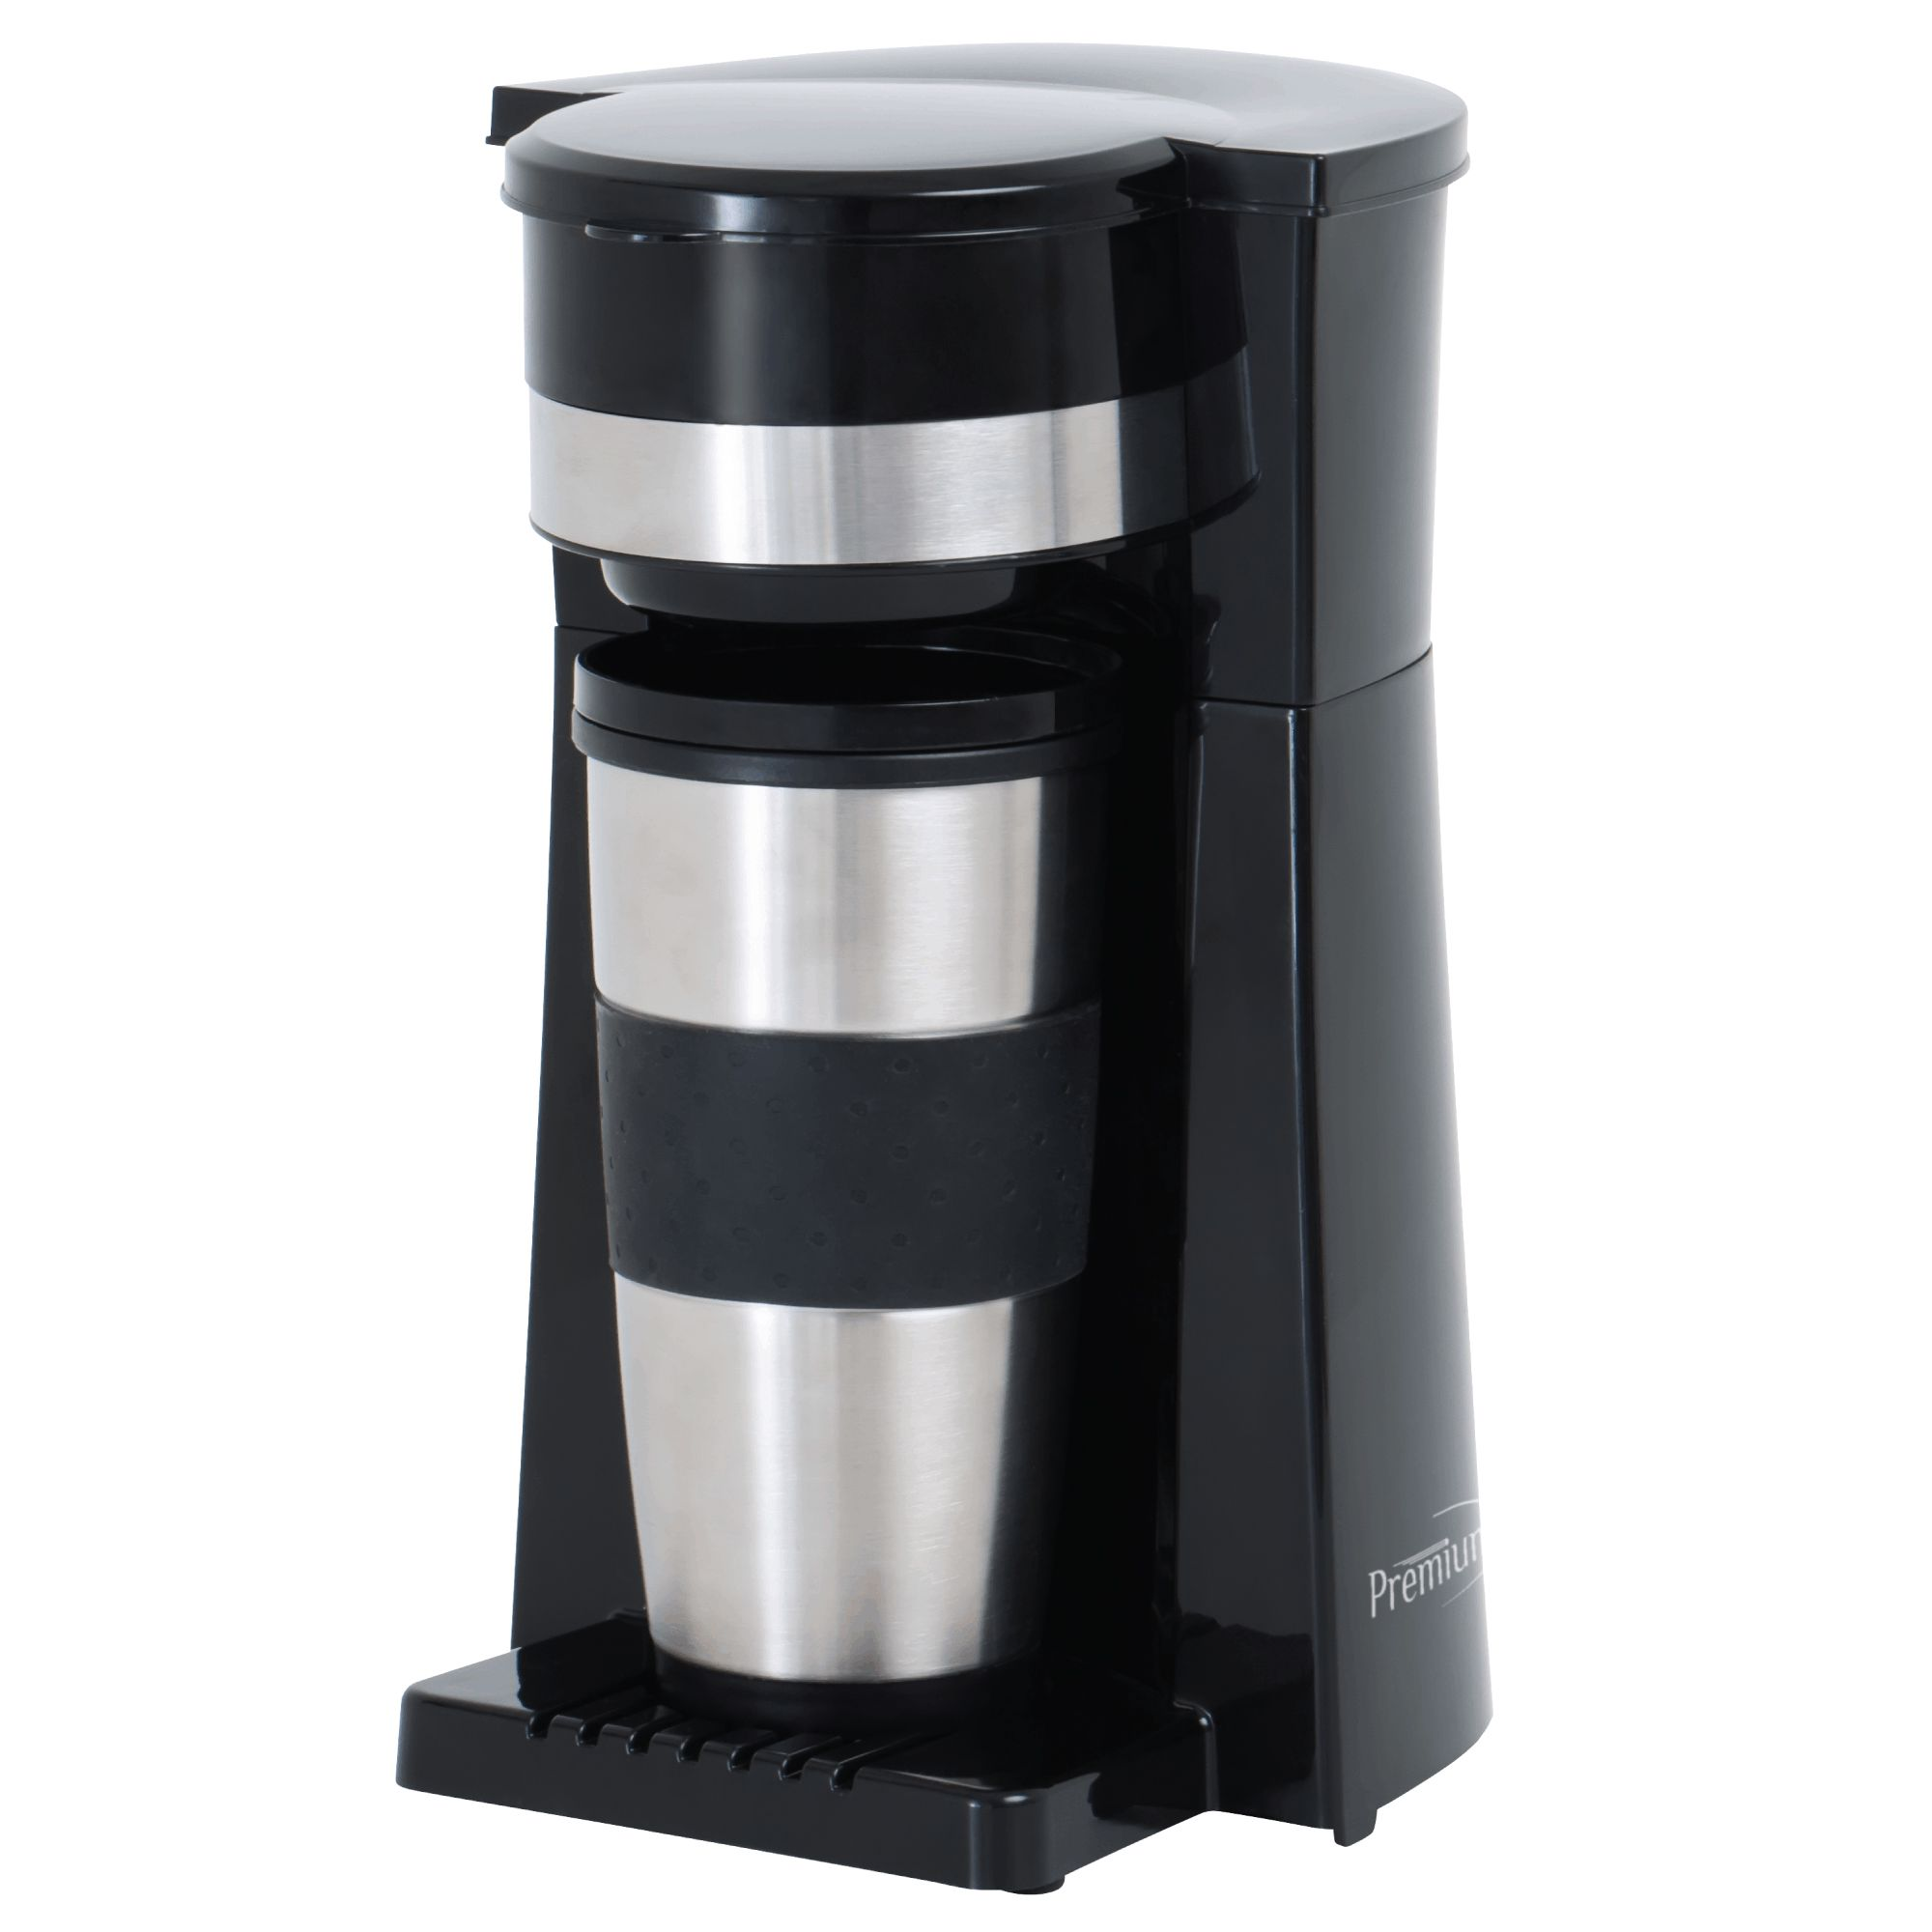 Premium PCM115 15oz Personal Coffee Maker